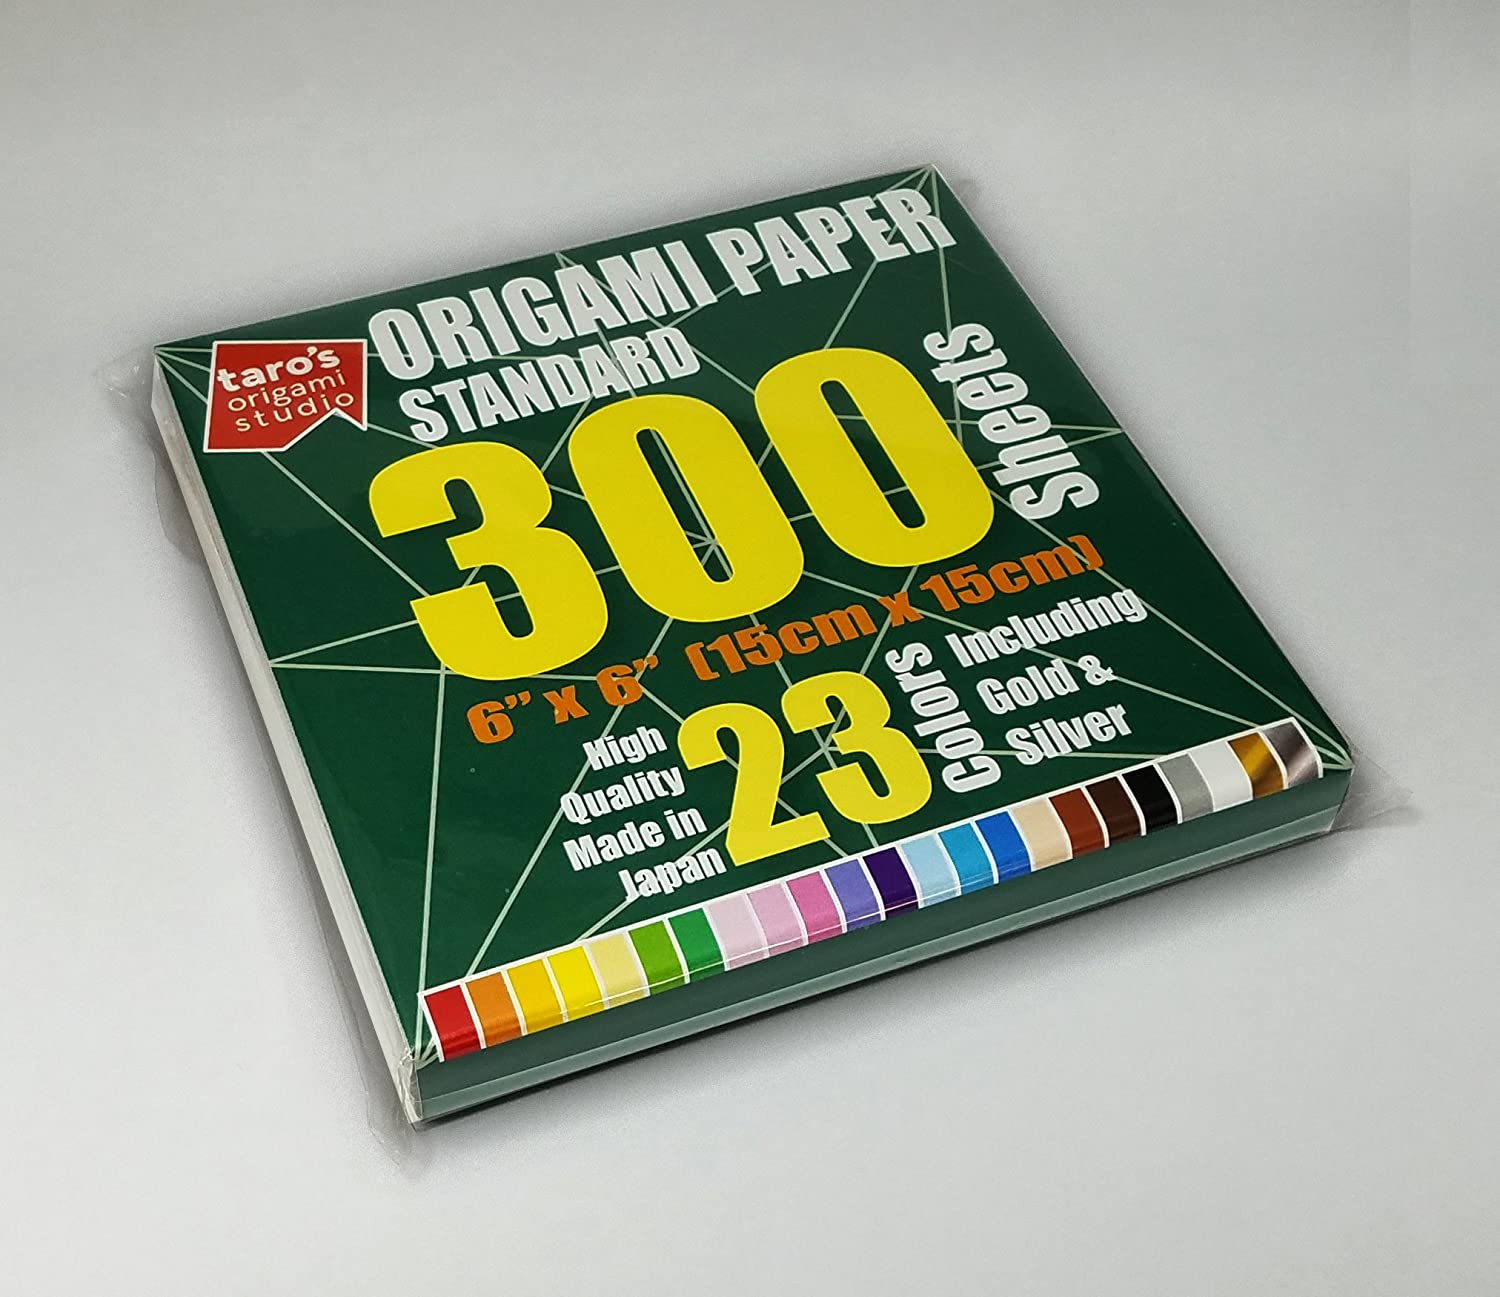 [Taro's Origami Studio] 23 Colors 200 Sheets 6x6 Inch Standard Single Sided Origami Paper Made in Japan Taro's Origami Studio standard variation